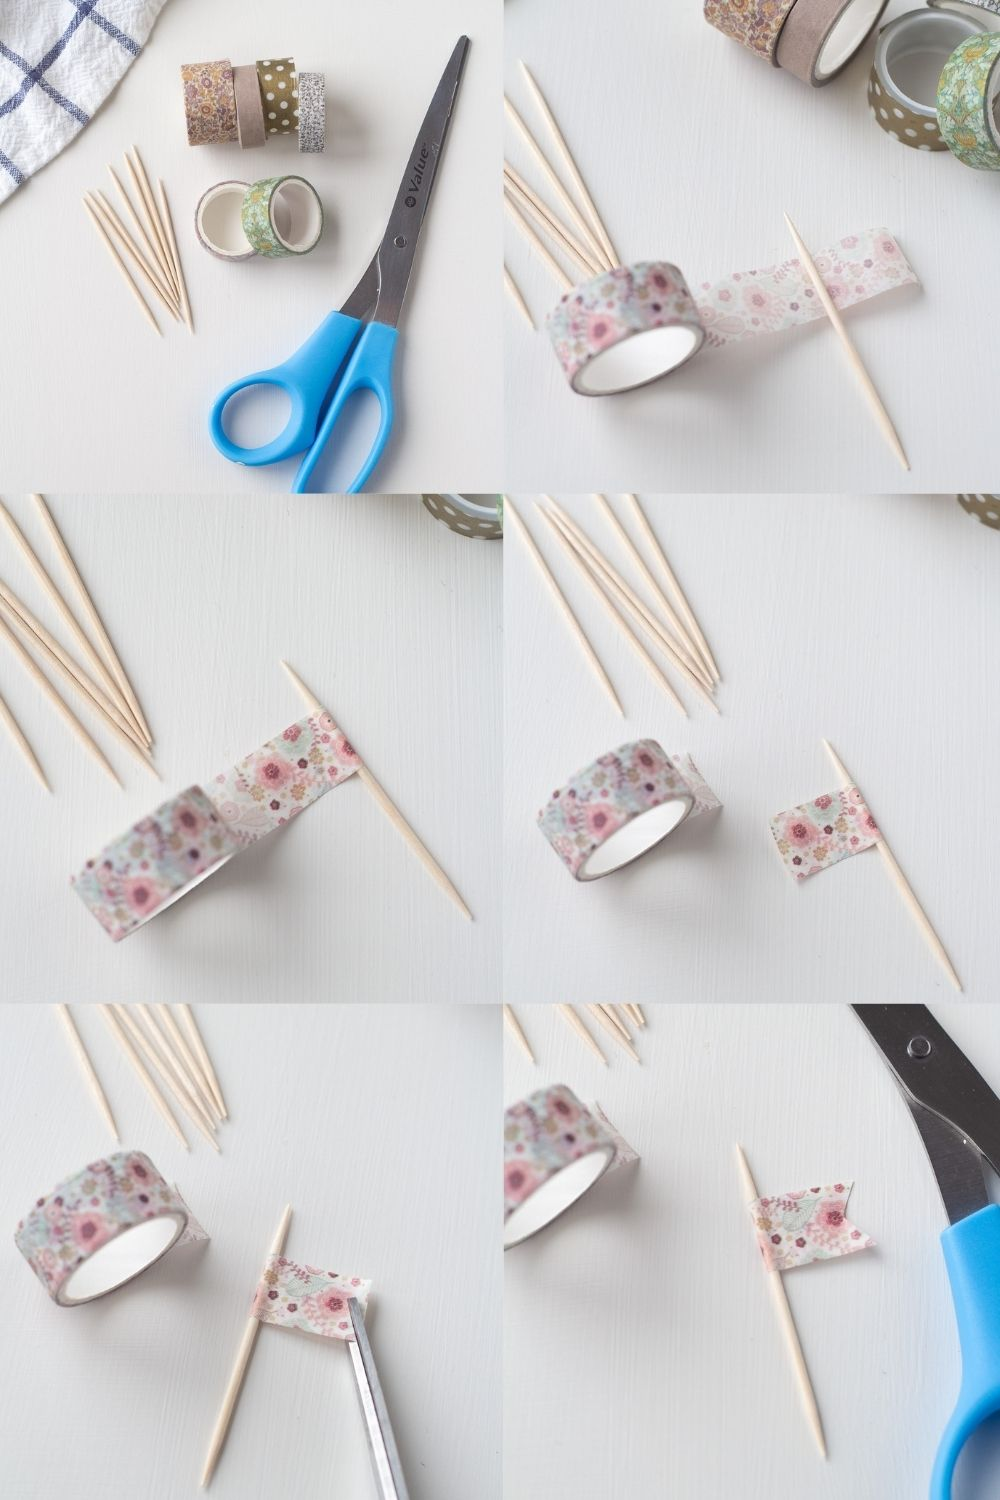 Step by step images of how to make washi tape flags.